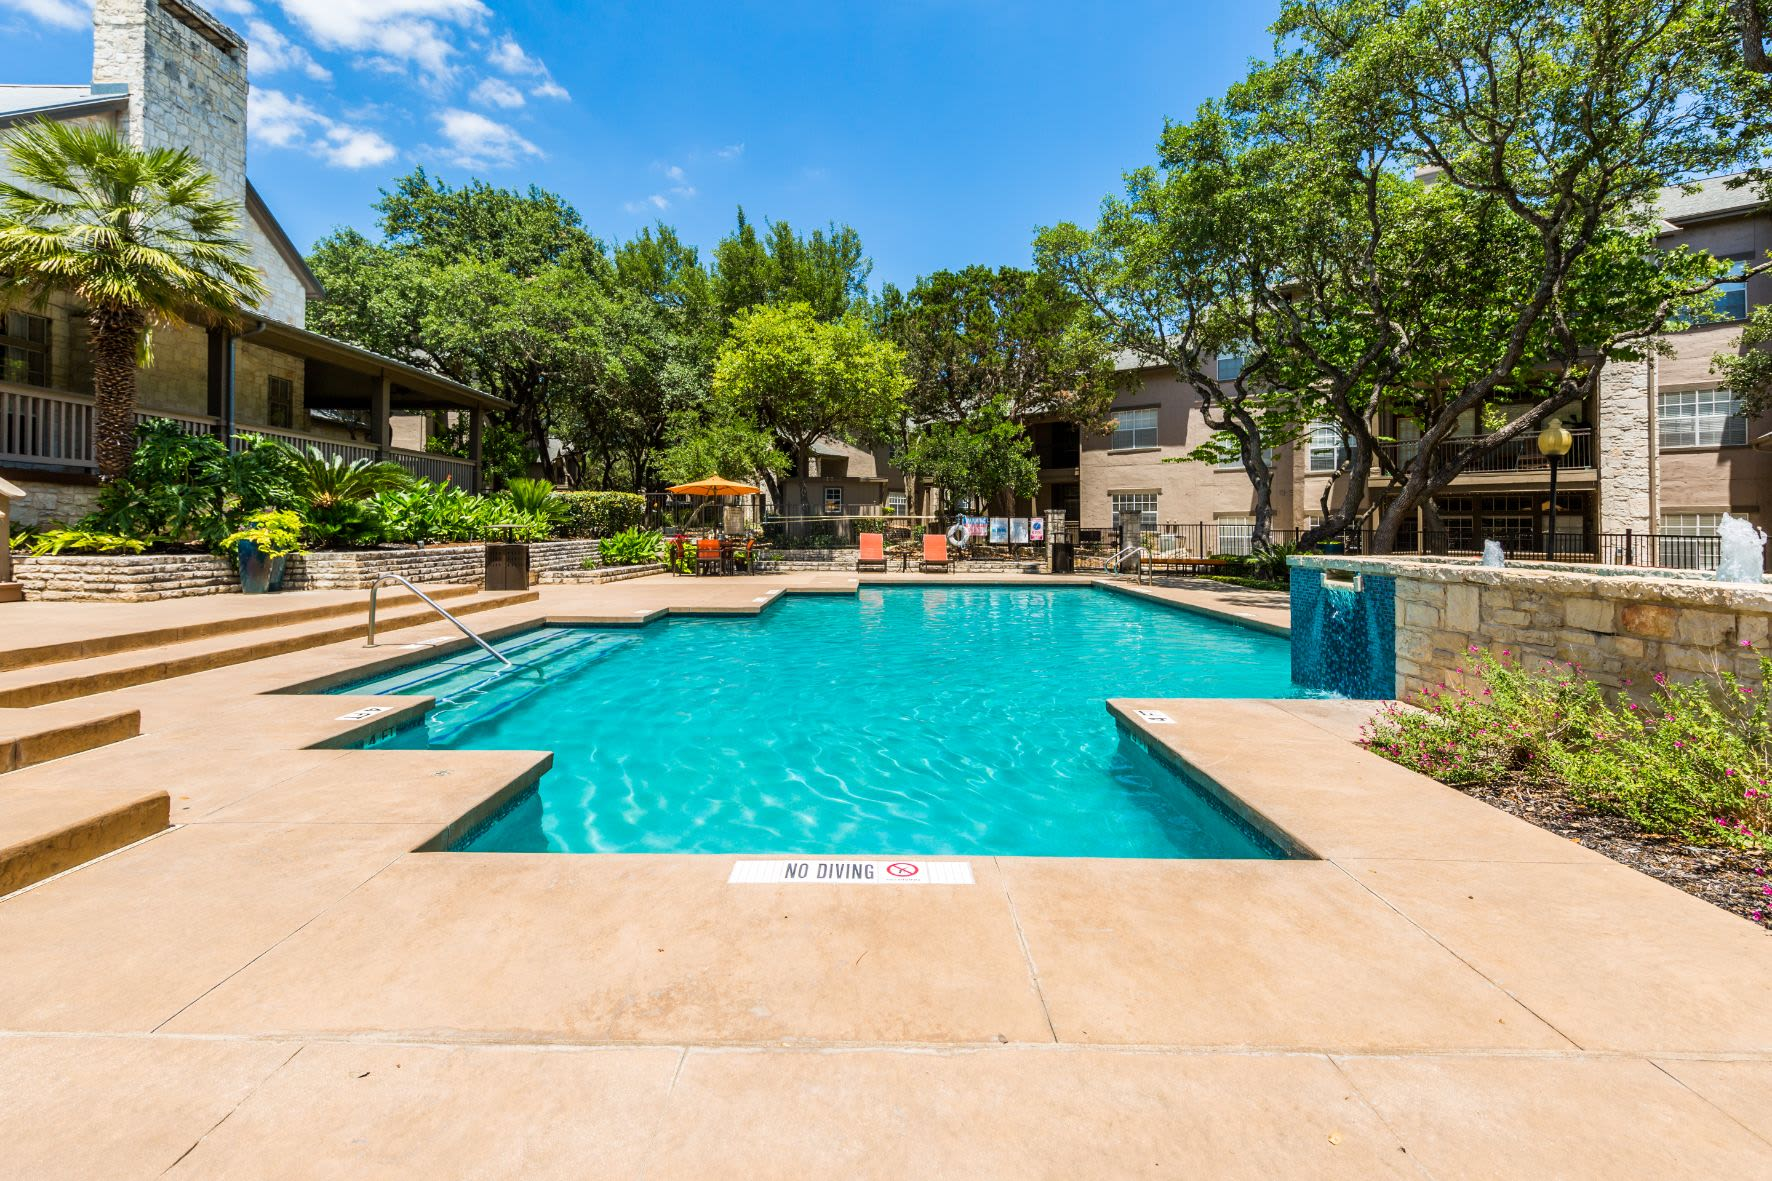 Resident information for Marquis at Deerfield in San Antonio, Texas